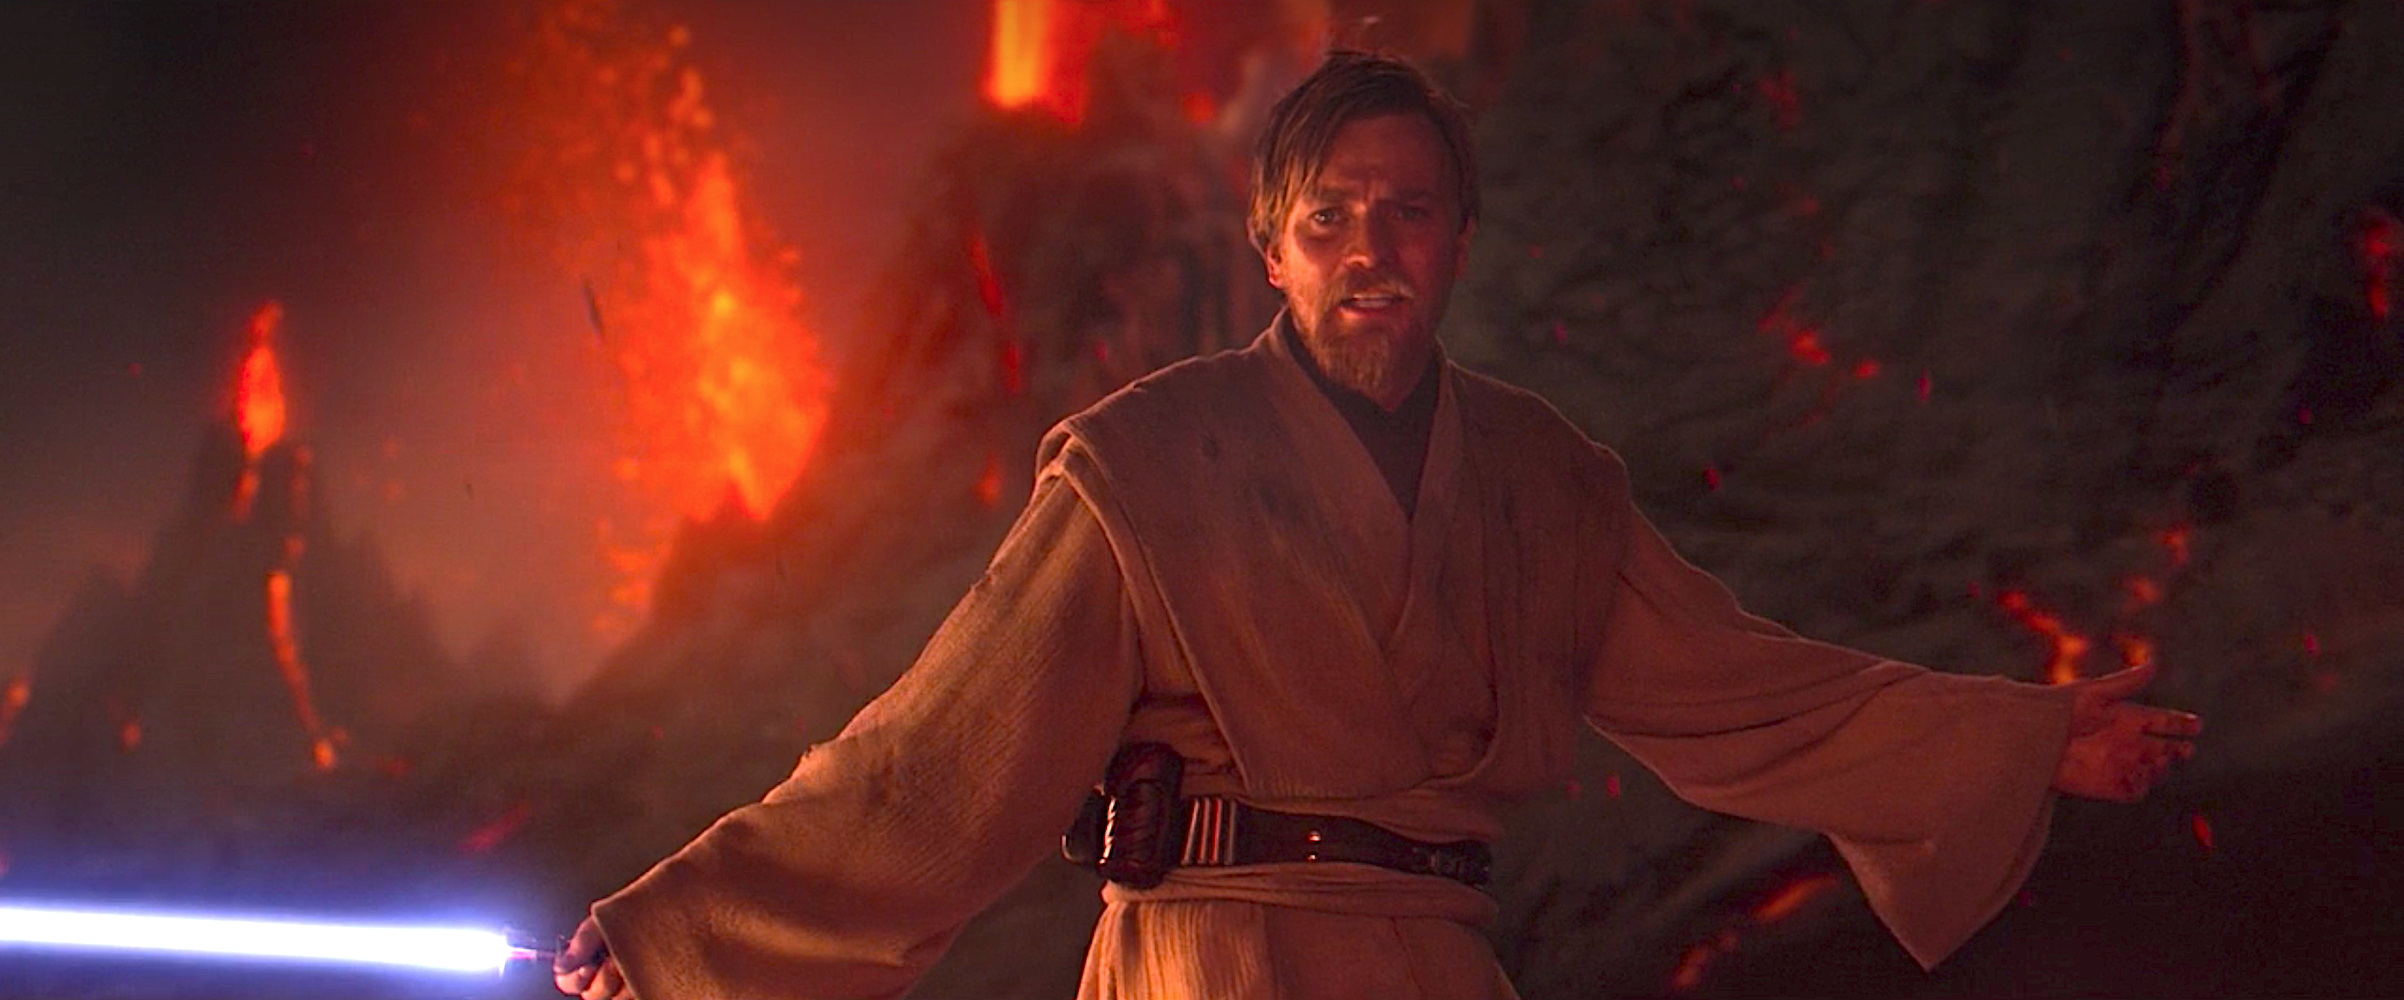 A New Star Wars Theory Explains the Real Meaning Behind Obi-Wan's High Ground Advantage